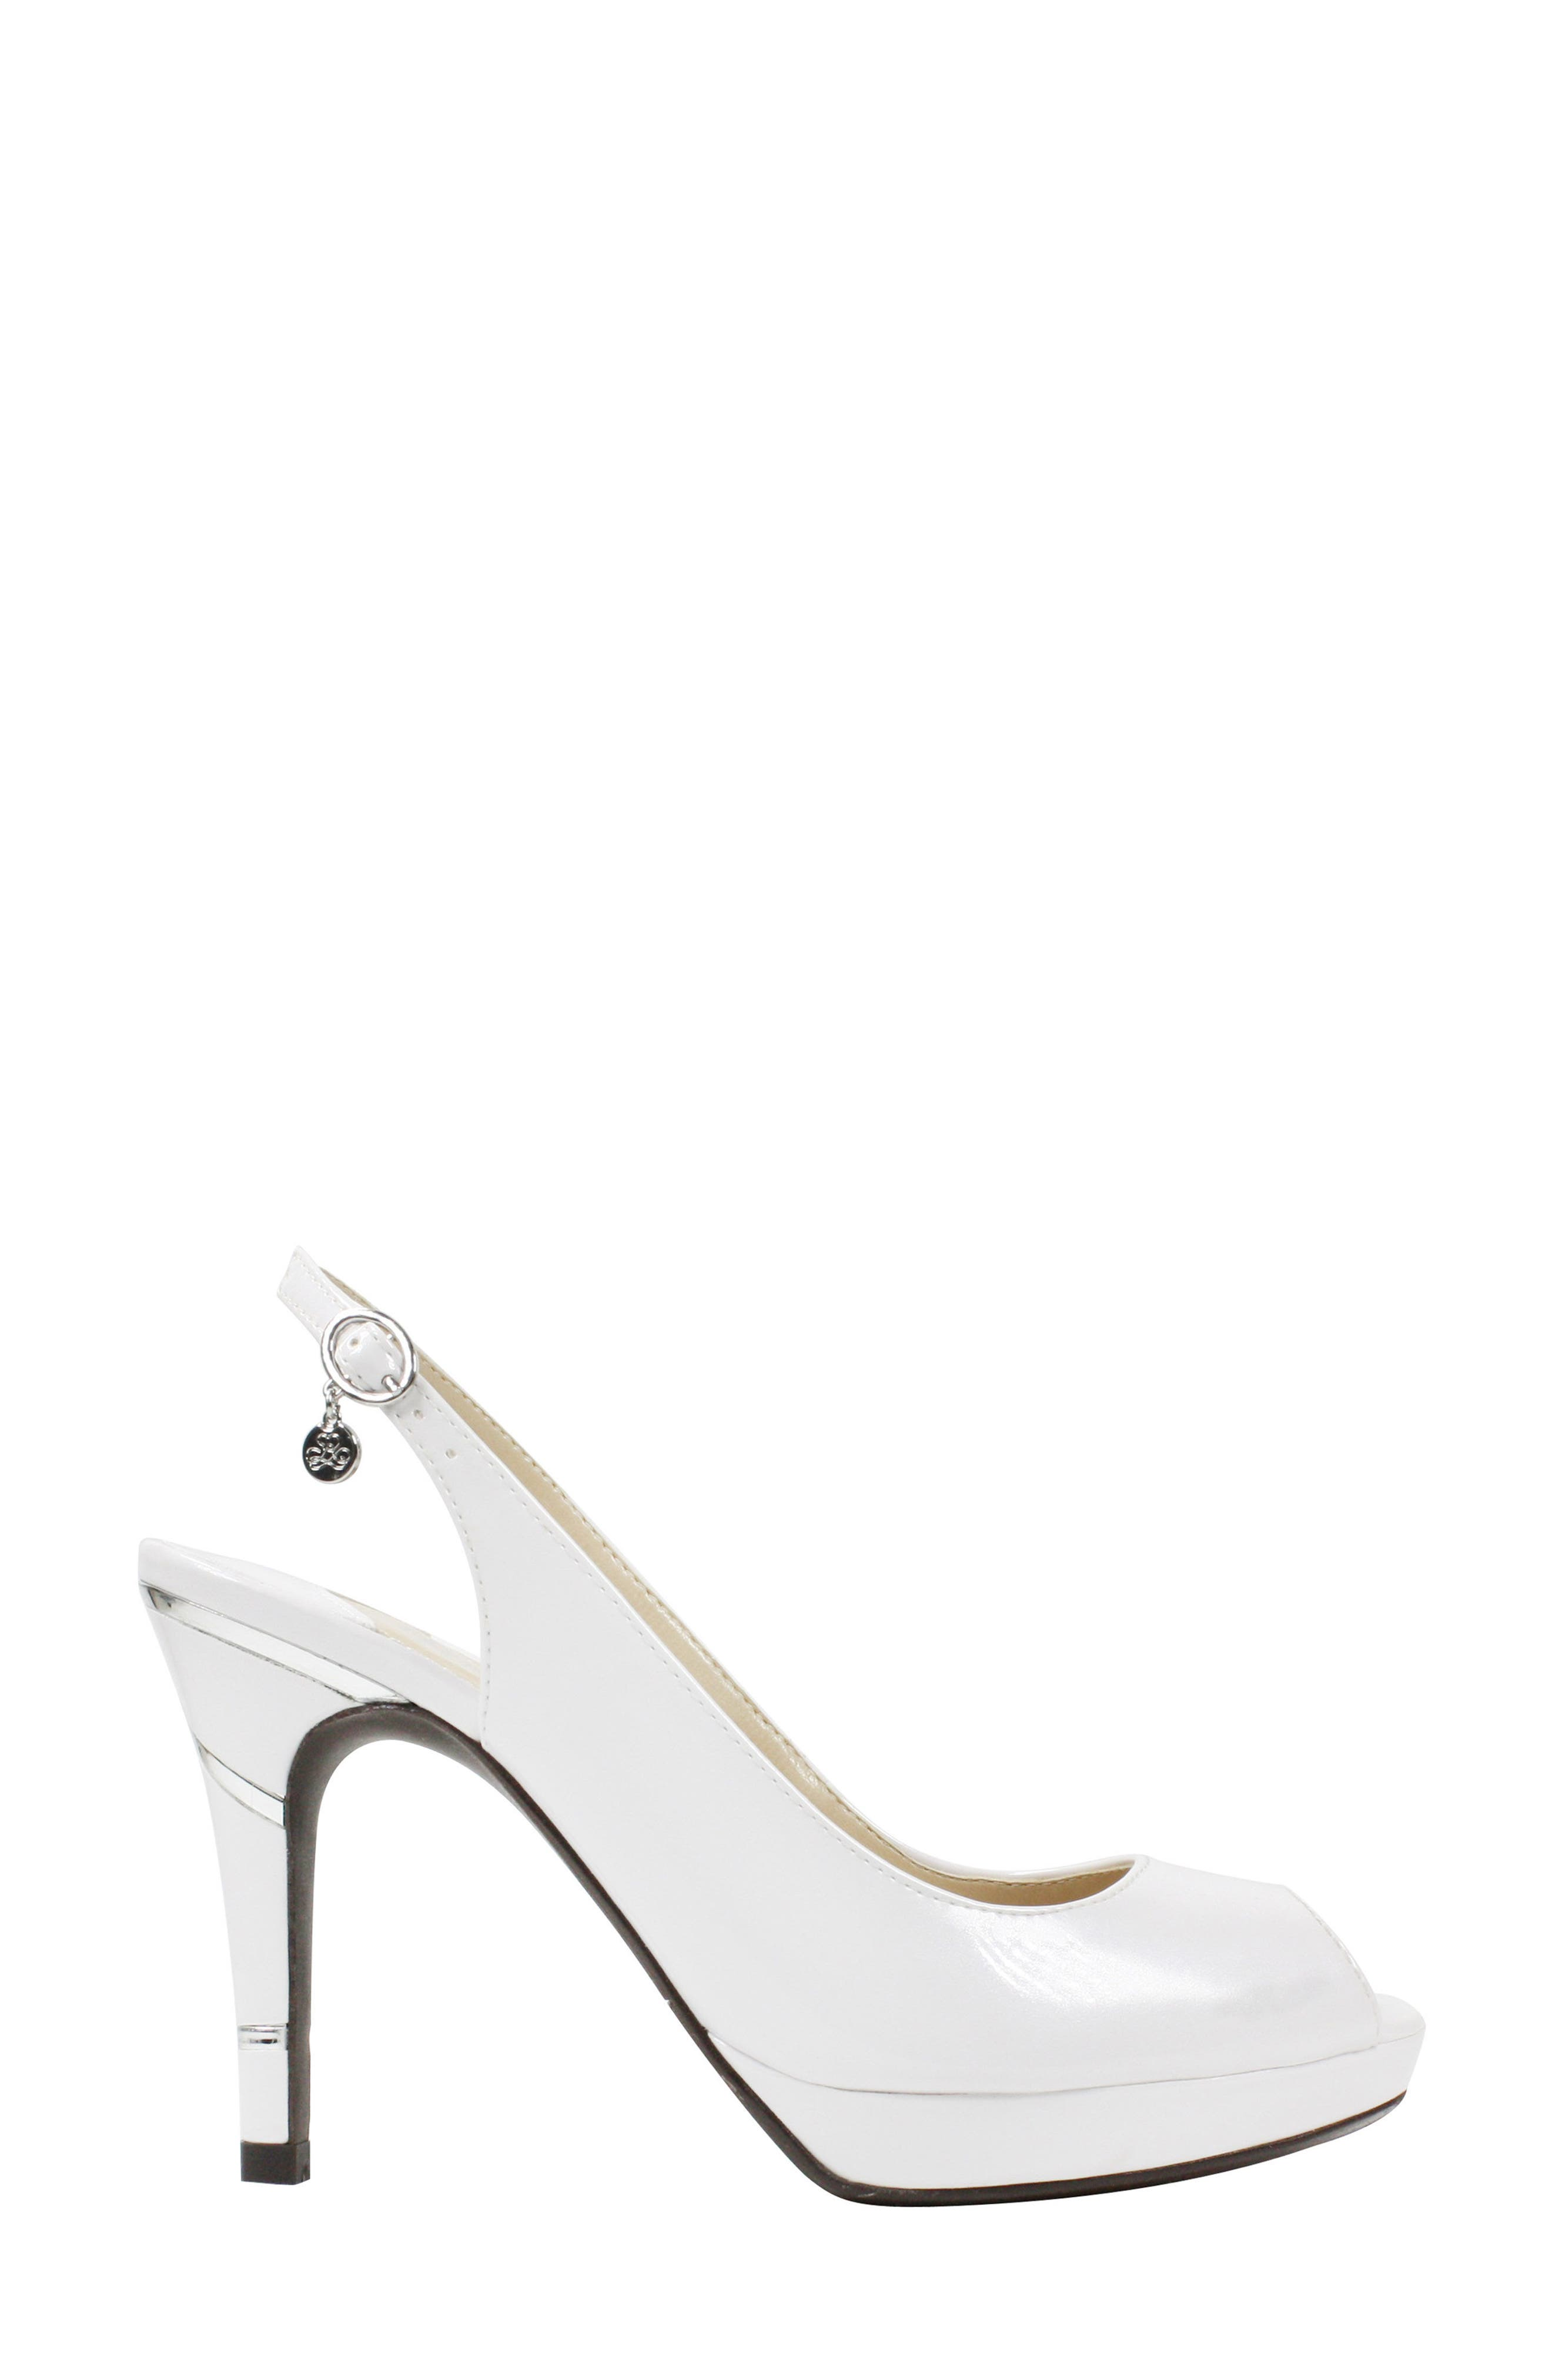 Onille Slingback Pump,                             Alternate thumbnail 3, color,                             Pearl White Faux Leather